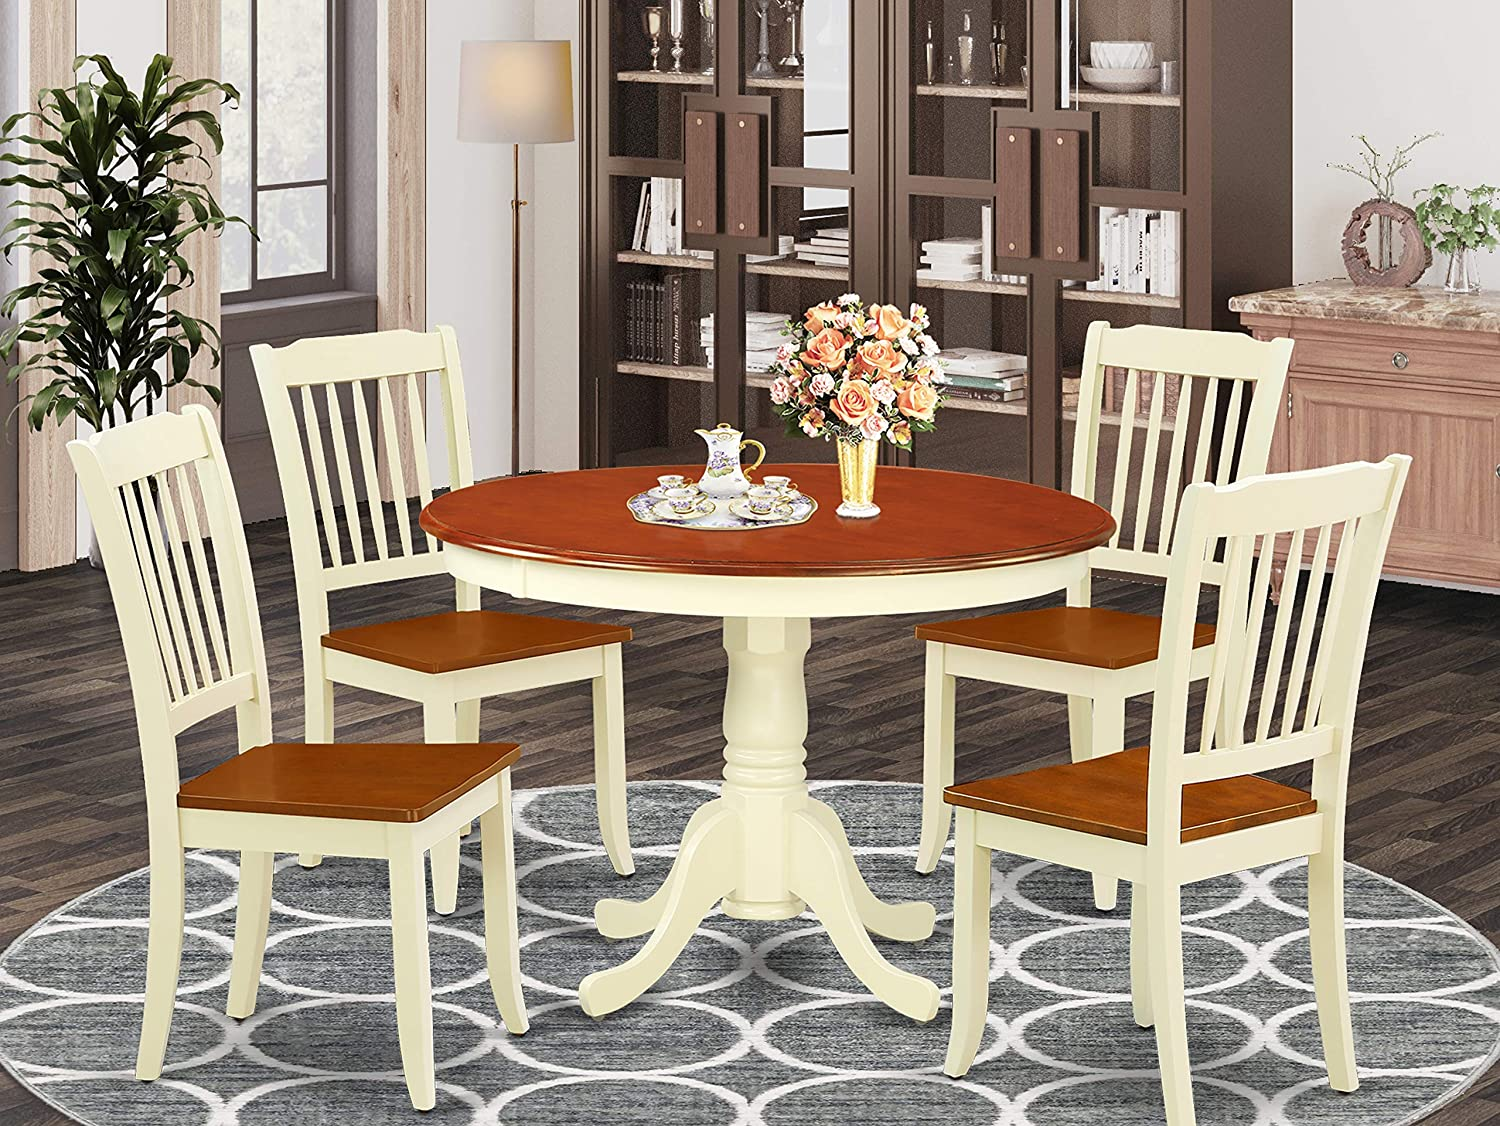 East West Furniture 5PC Round 42 inch Table and 4 vertical slatted Chairs, Buttermilk & Cherry